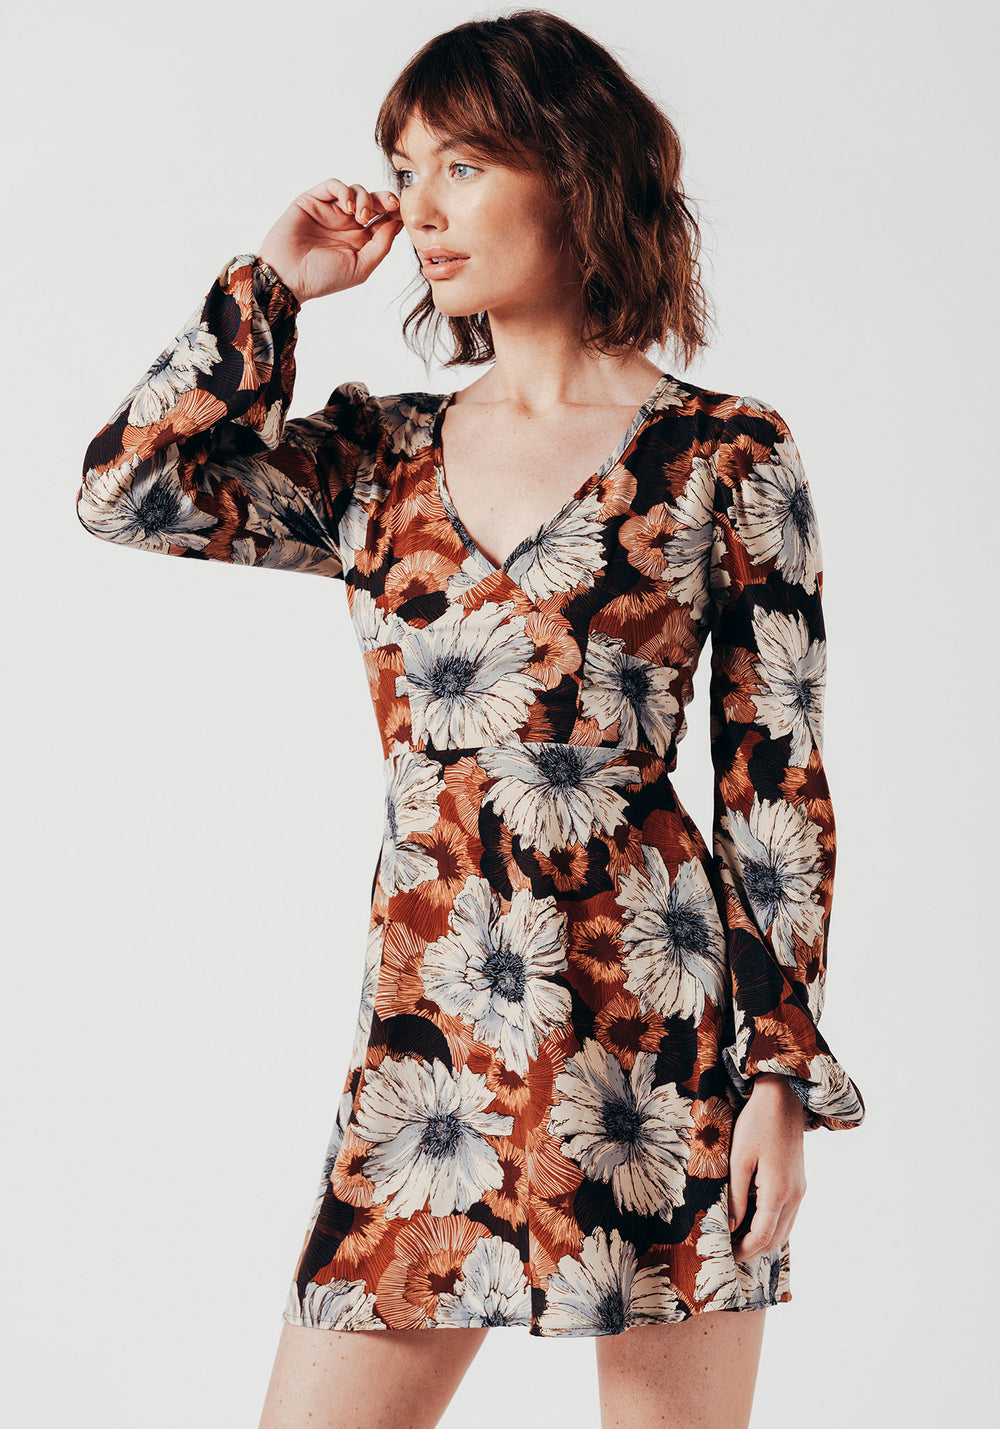 Blossom Sleeve Mini Dress in Brown Floral Print